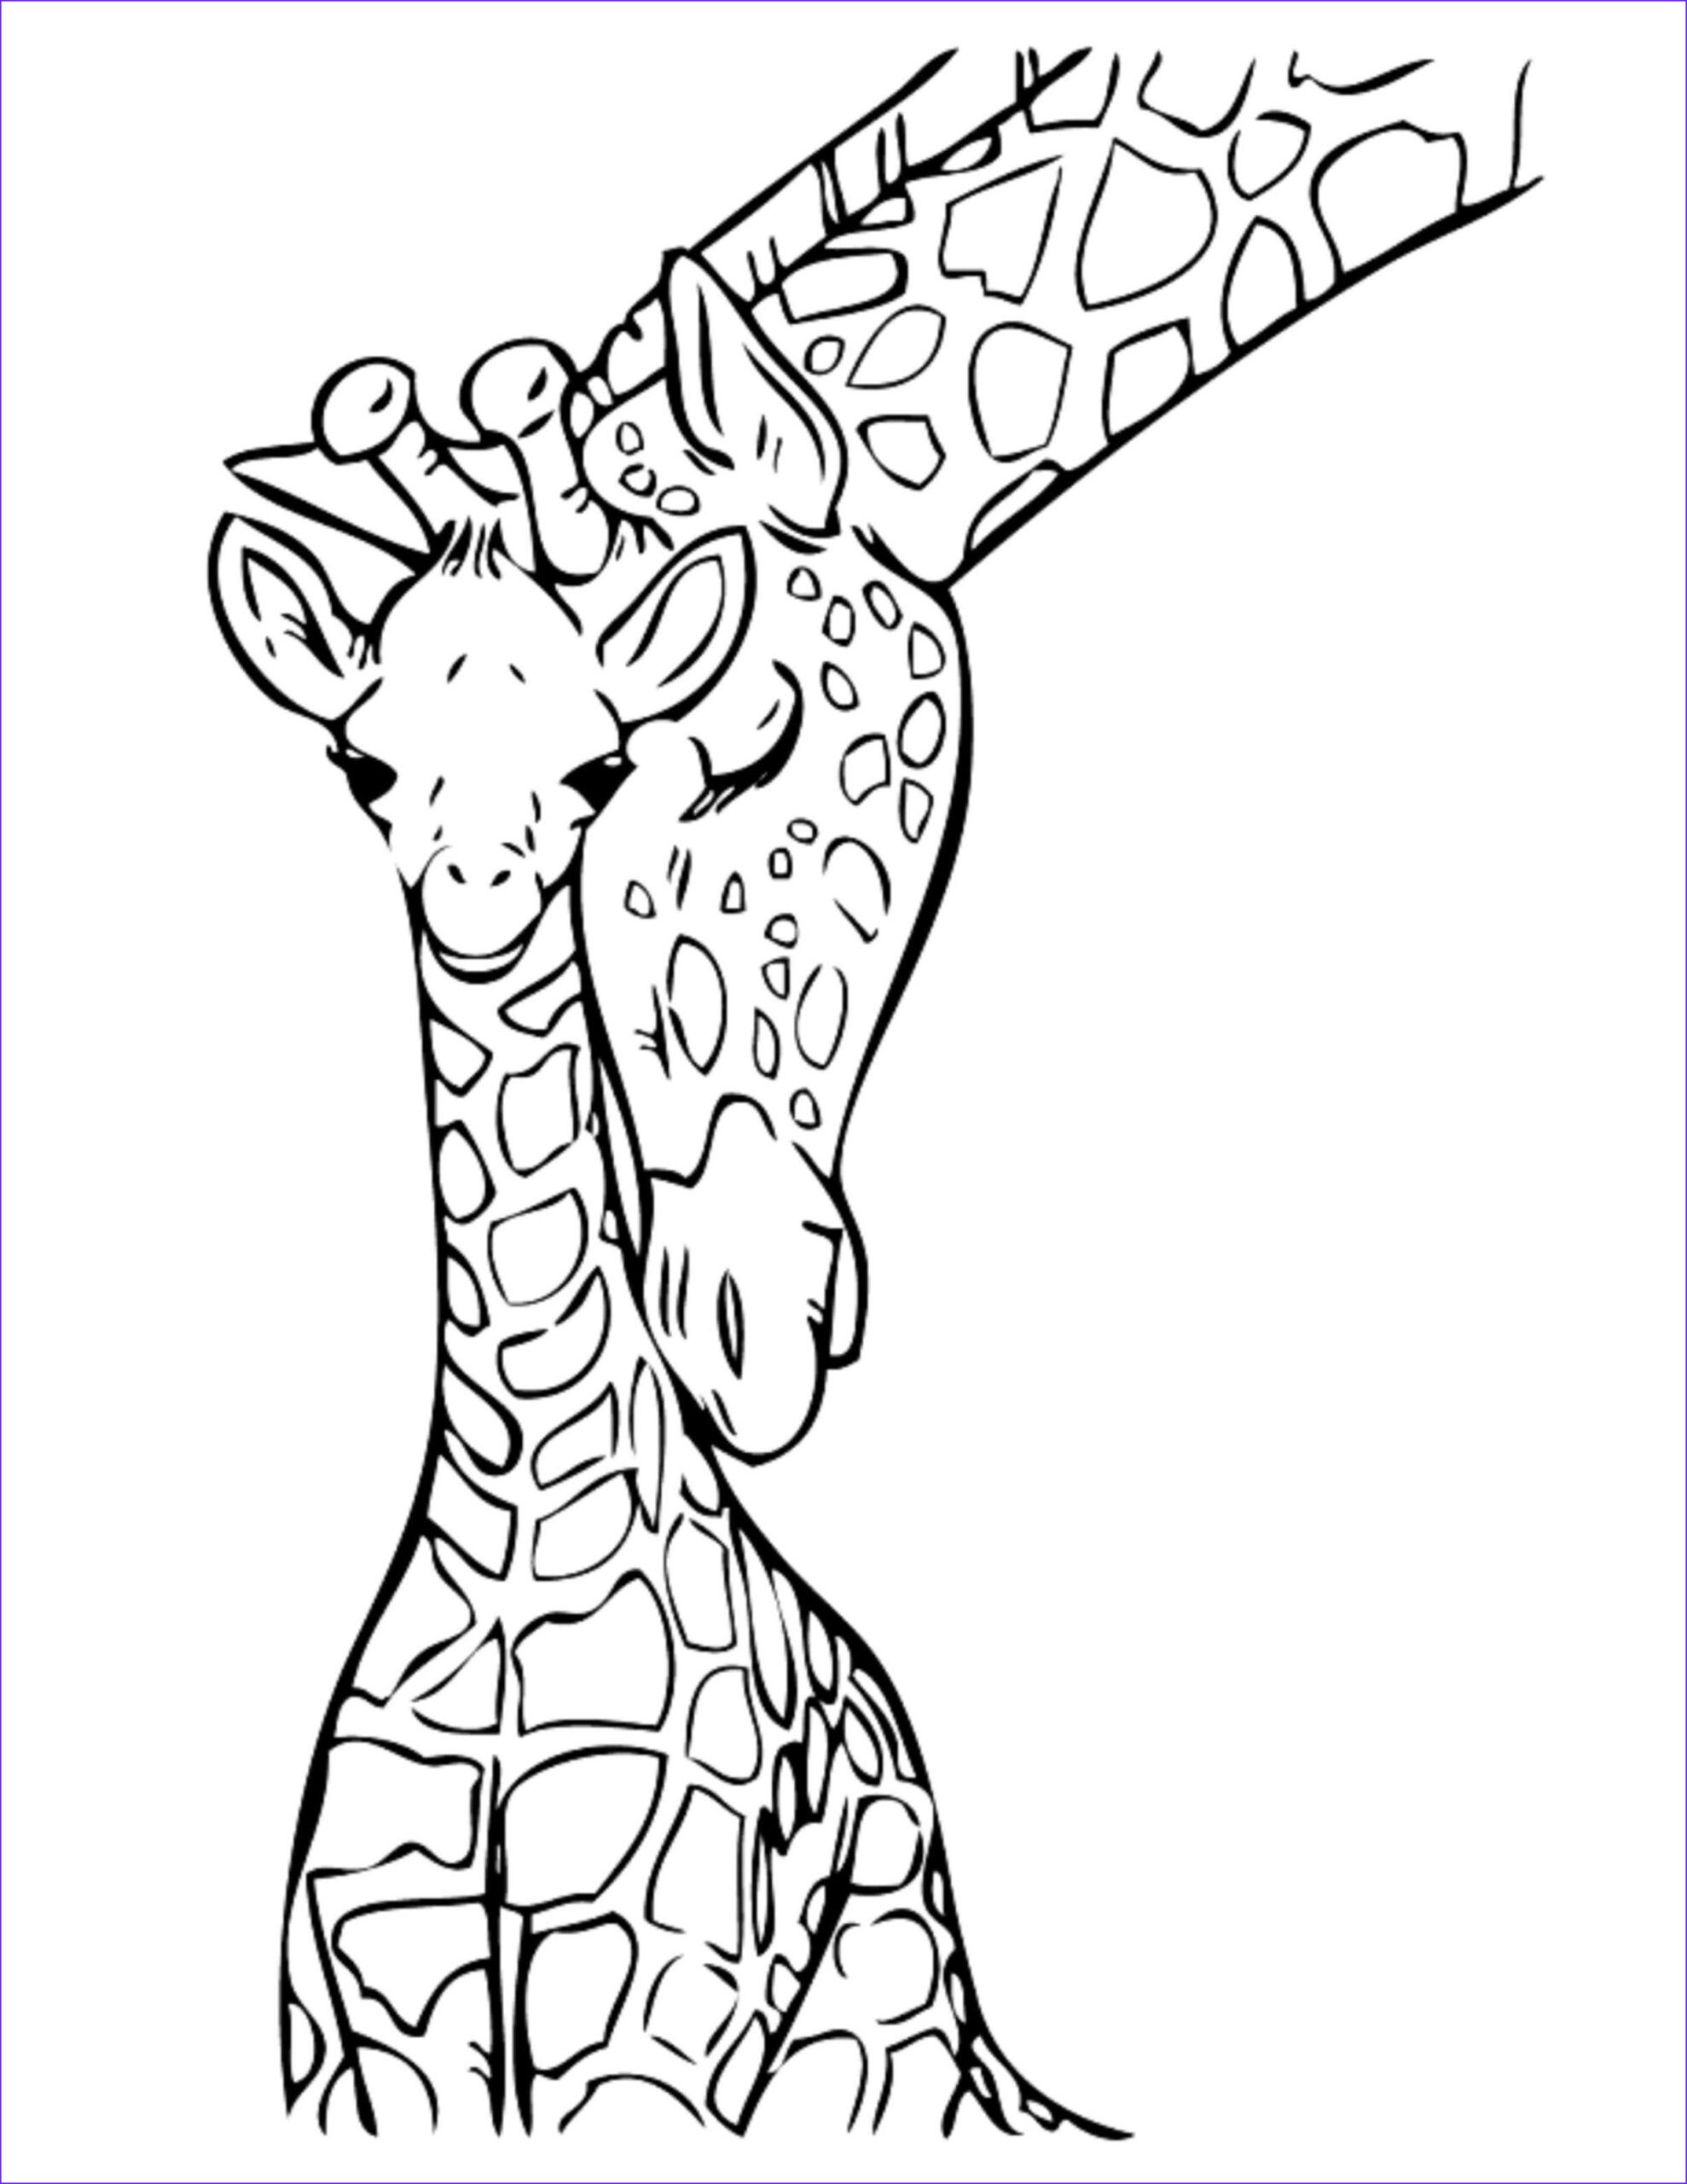 Giraffe Coloring Book Awesome Photography Giraffe Coloring Pages